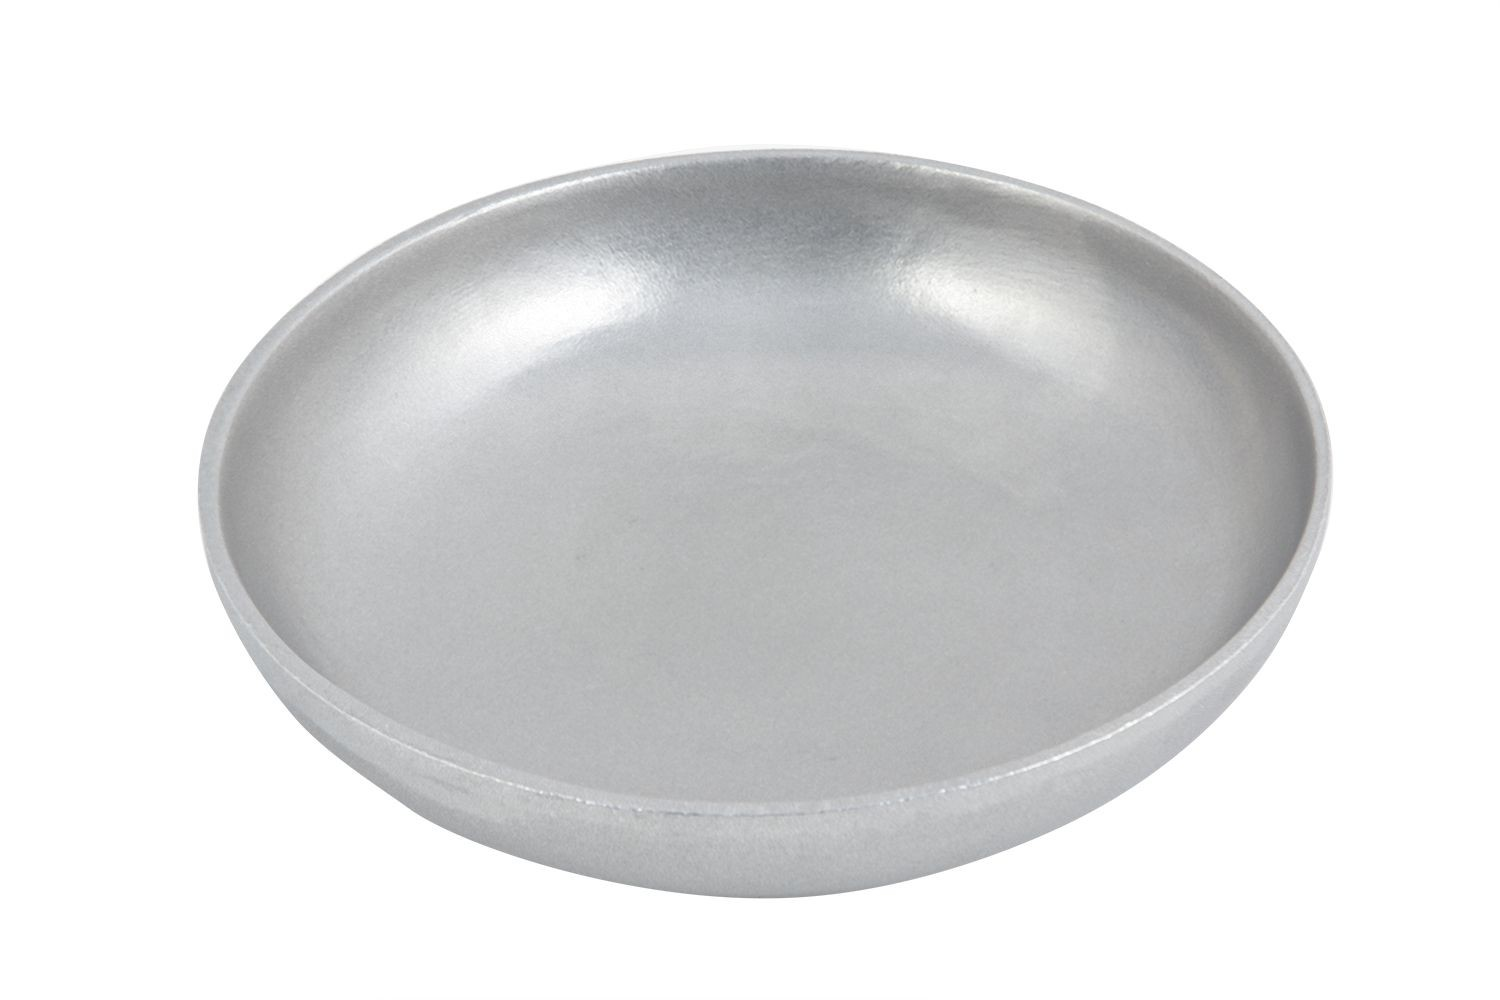 "Bon Chef 15007P Cover for Casserole Dish 15006, Pewter Glo 10"" Dia., Set of 2"